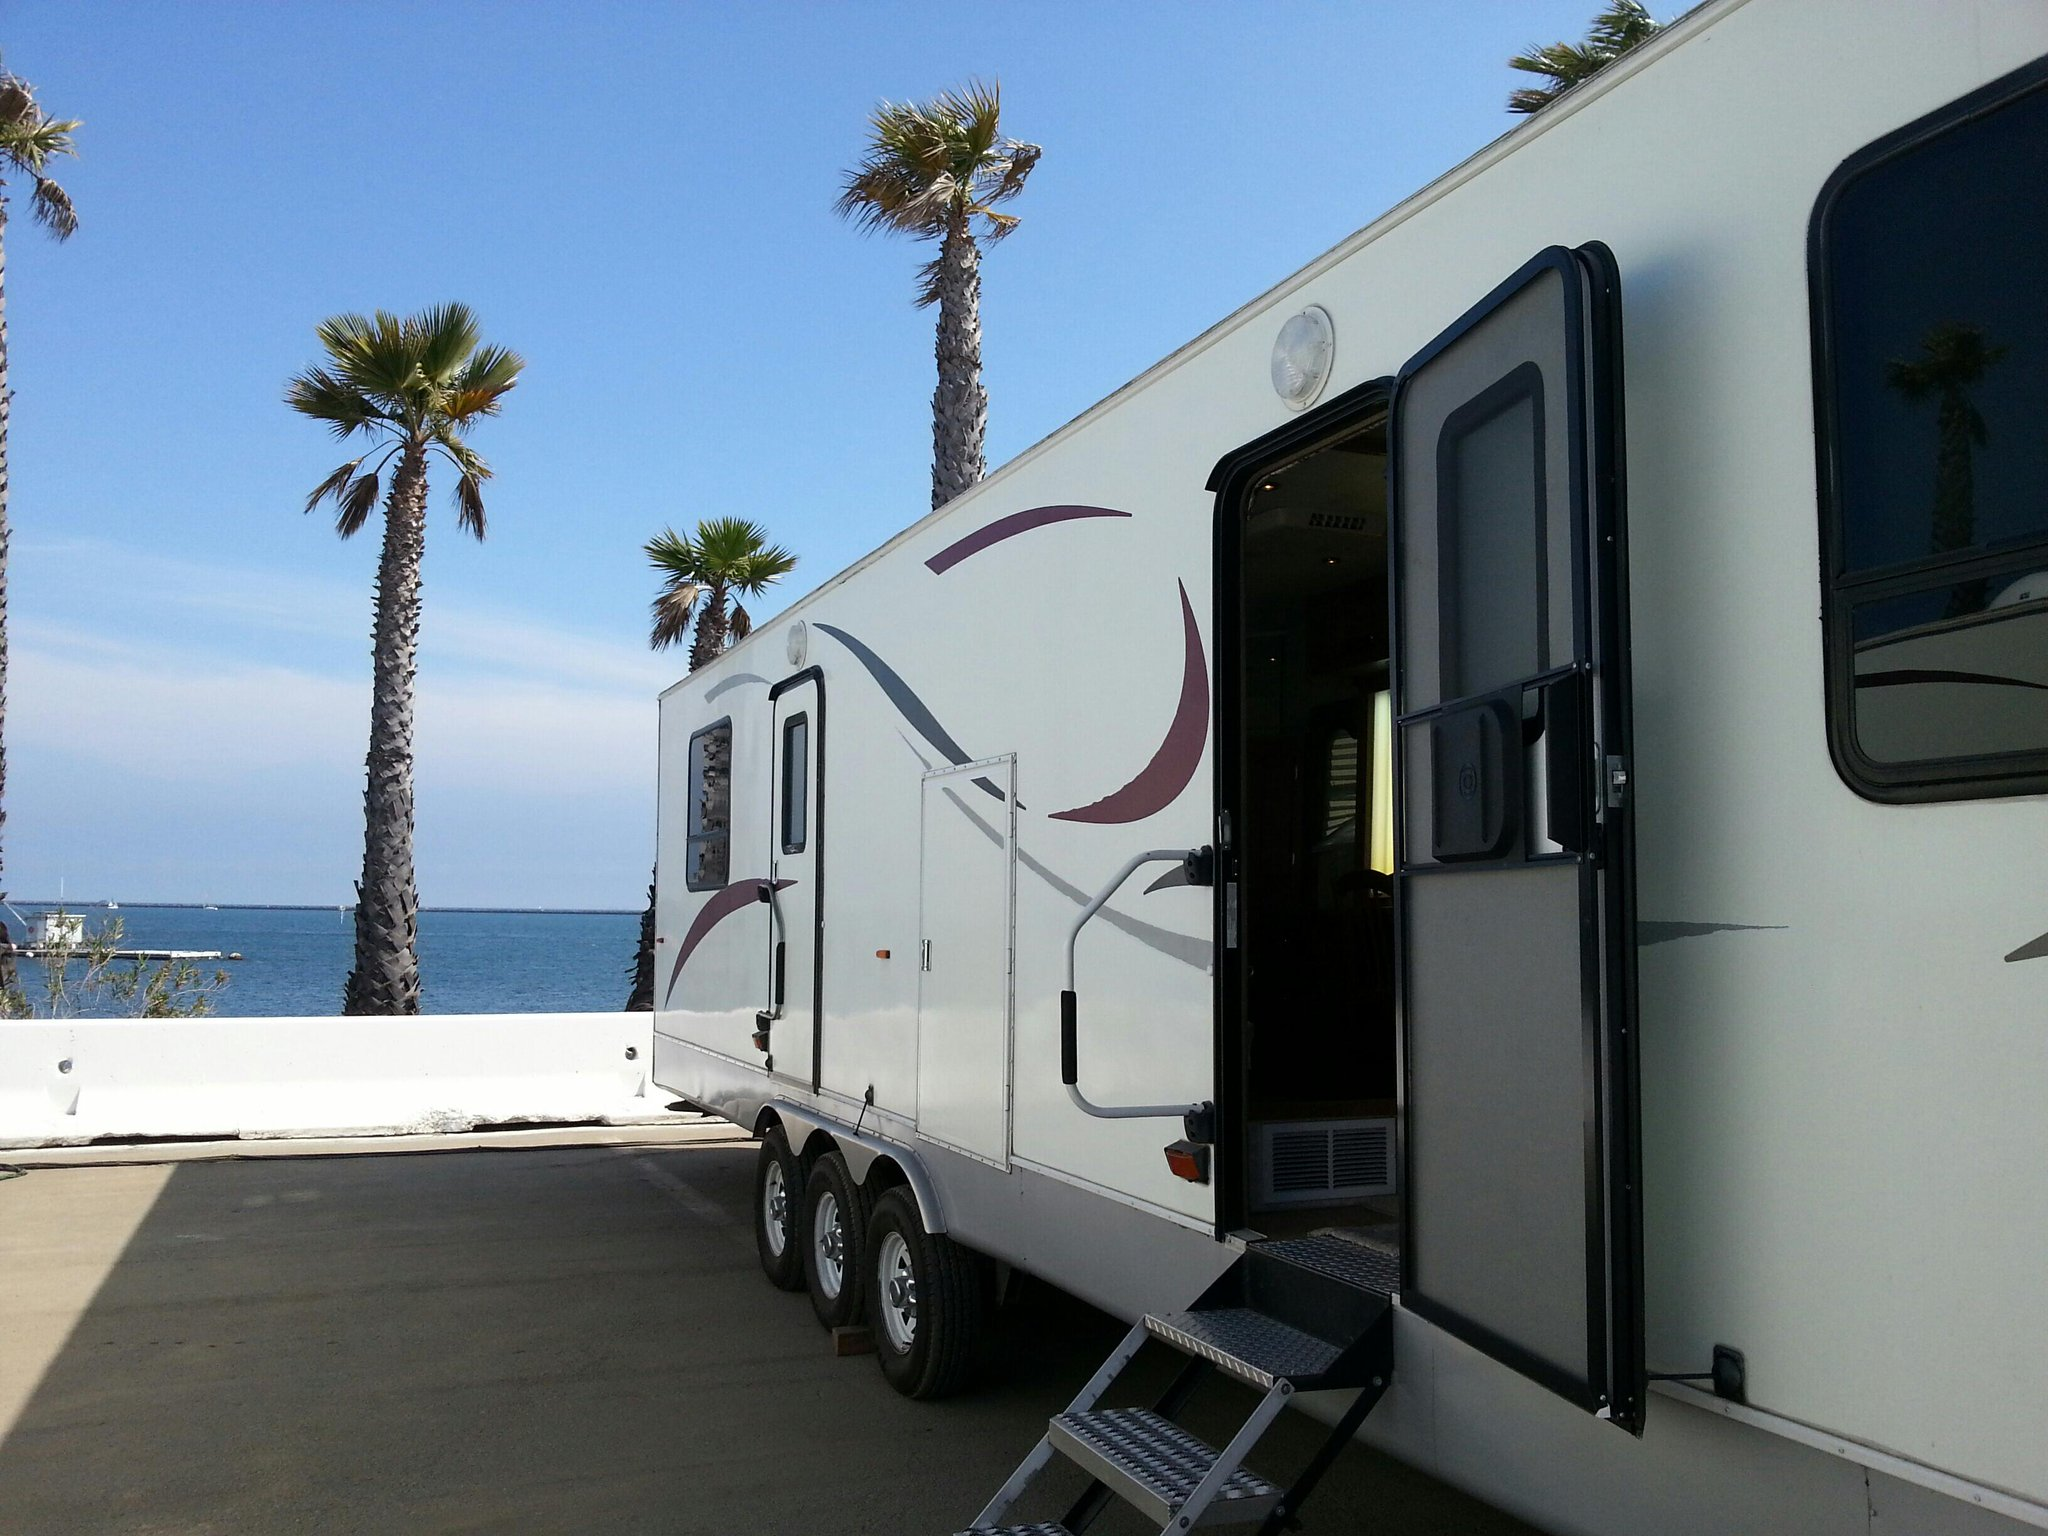 Twitter / cliffmsimon: Best trailer location ive had. ...